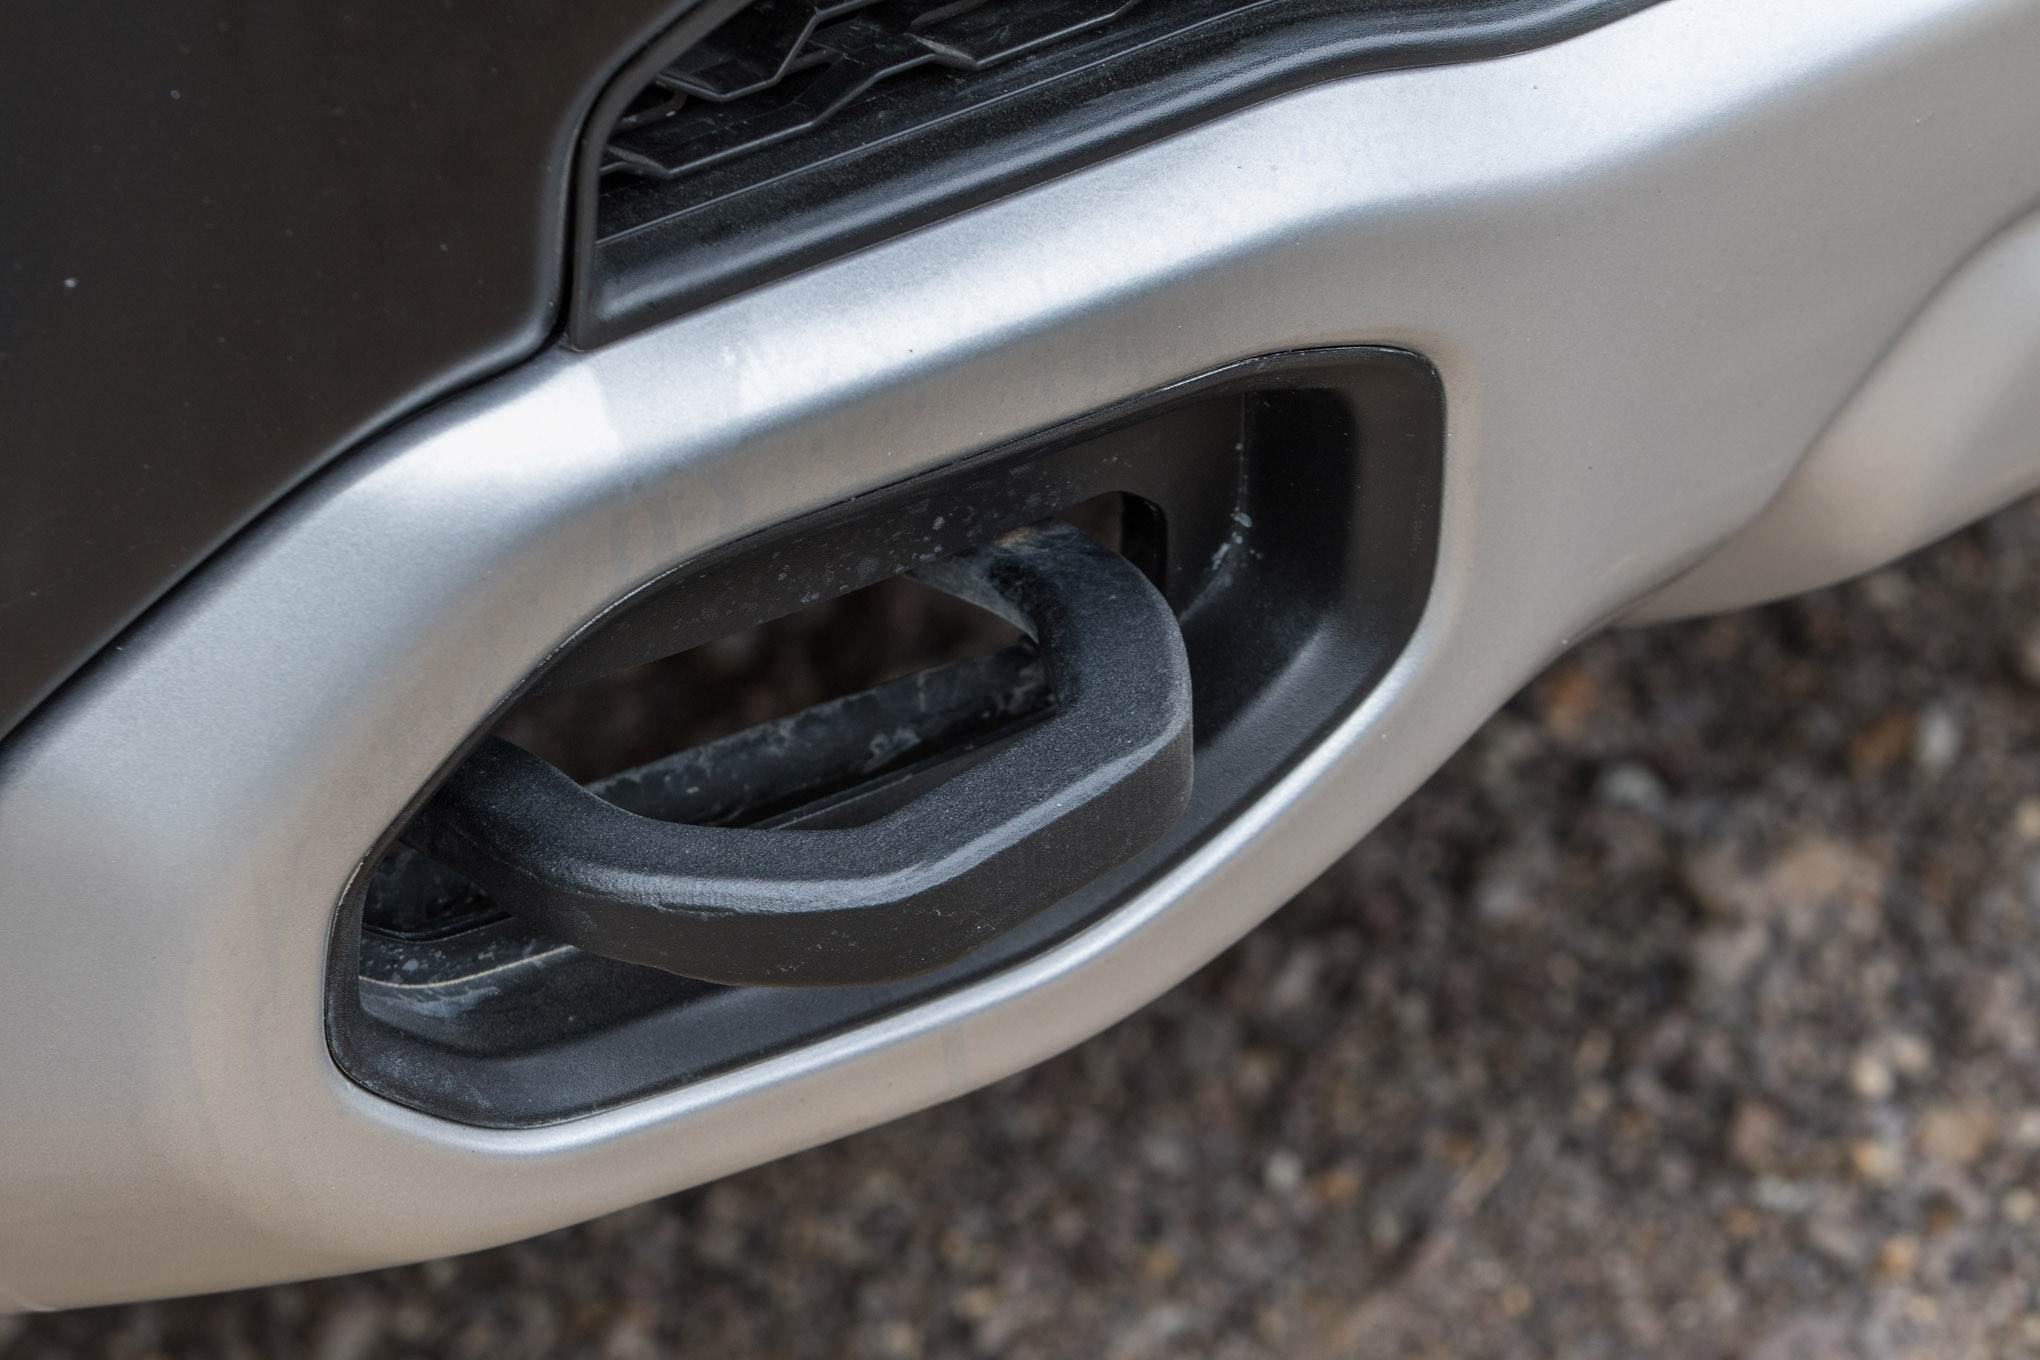 The Ram Rebel has enclosed towhooks in the front bumper that are tied into the framerails. They protrude far enough to get a soft shackle through them while having a minimal impact on approach angle.